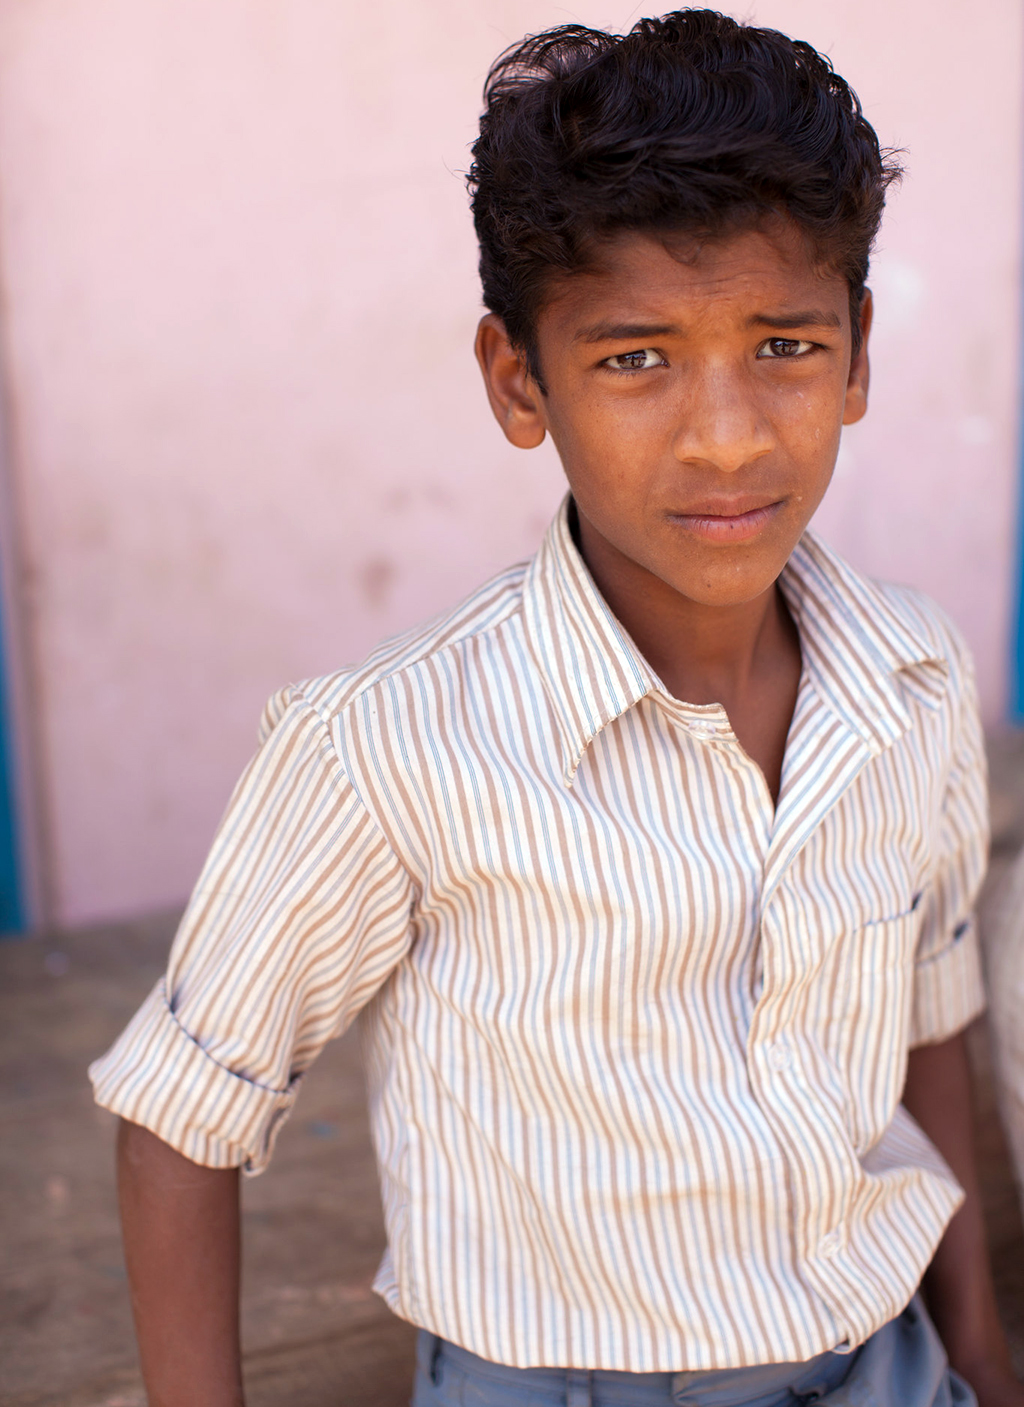 help_end_human_trafficking_boy_india_streets_love_justice_international